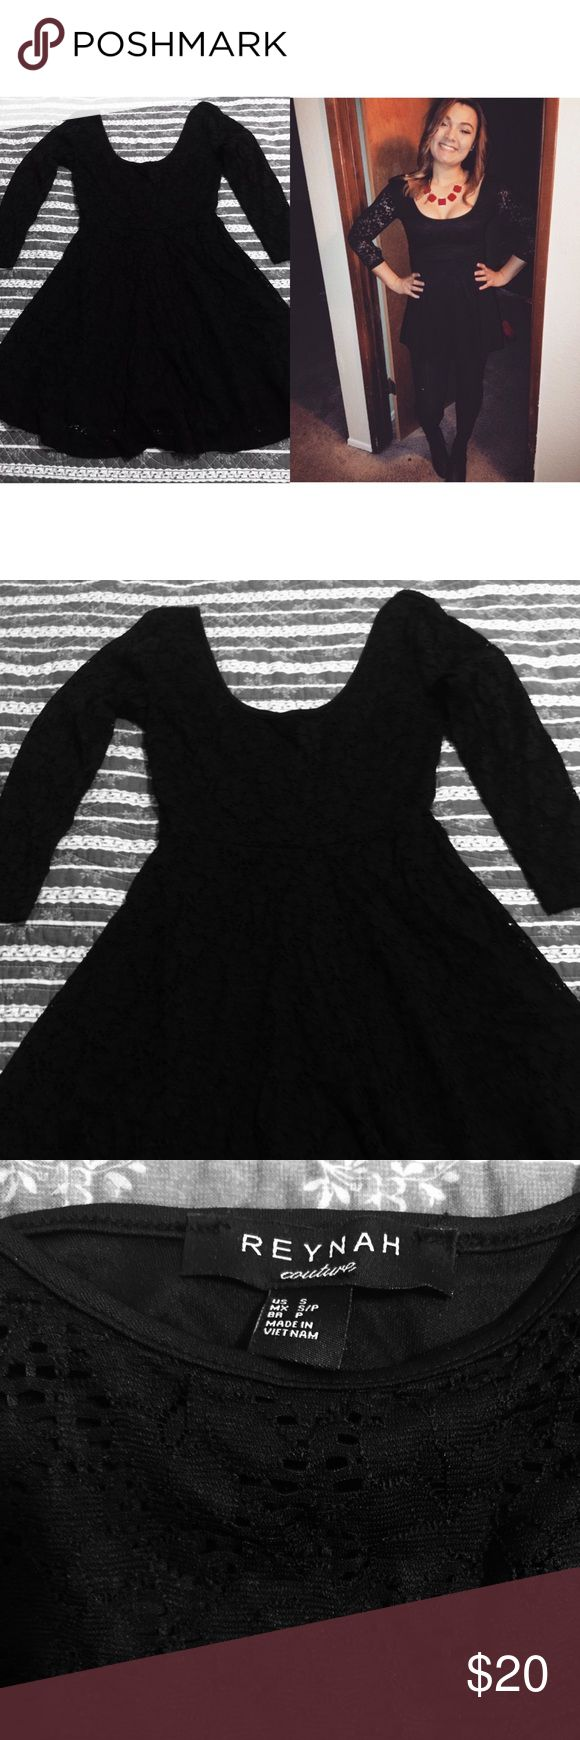 Black lace dress Black lace dress . Very cute dinner date dress . Only wore once in photo . Size small Dresses Mini